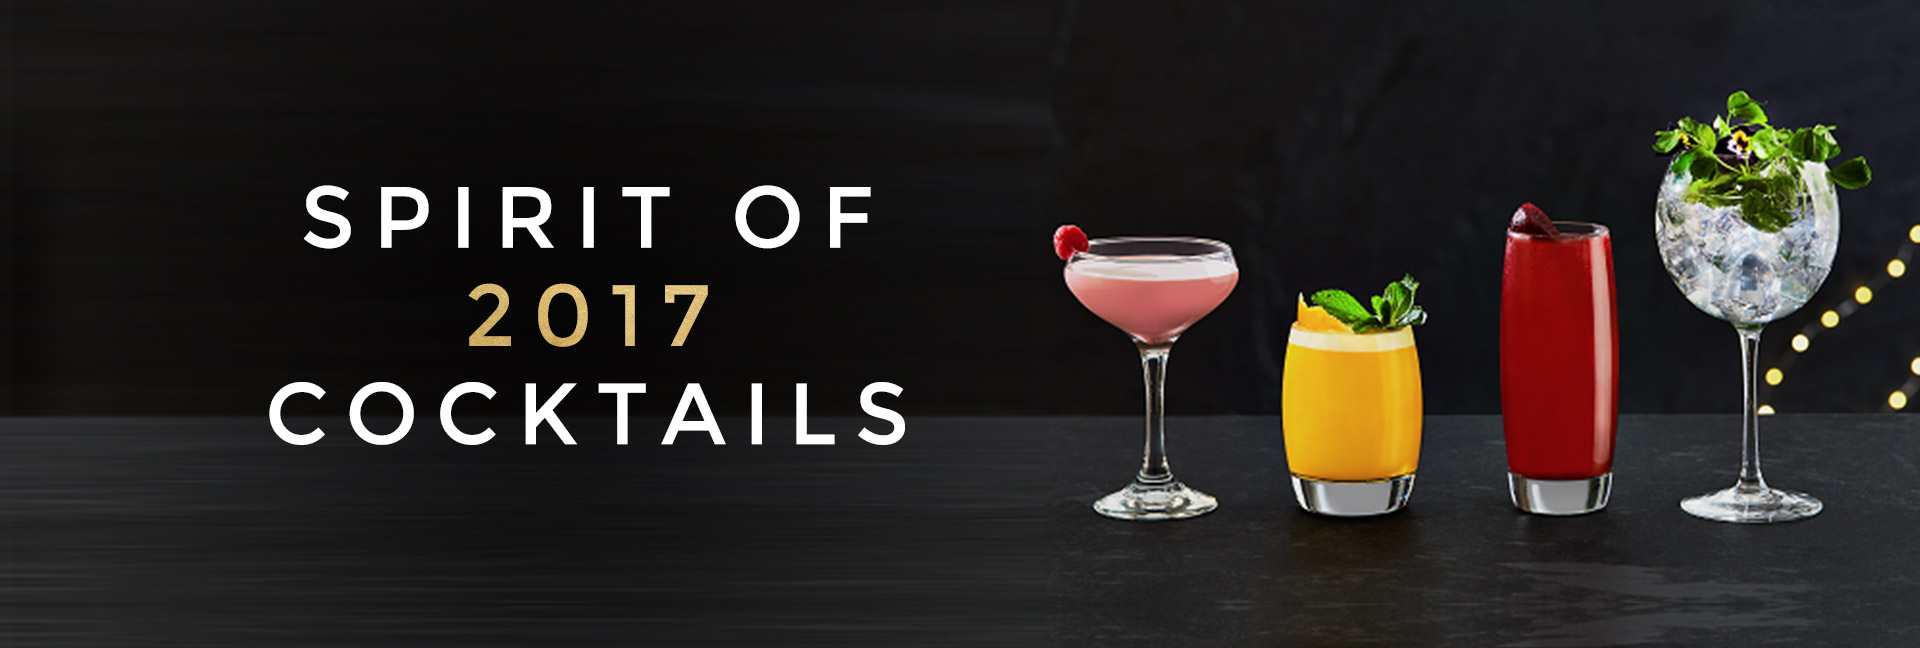 Spirit of 2017 cocktails at All Bar One Harrogate